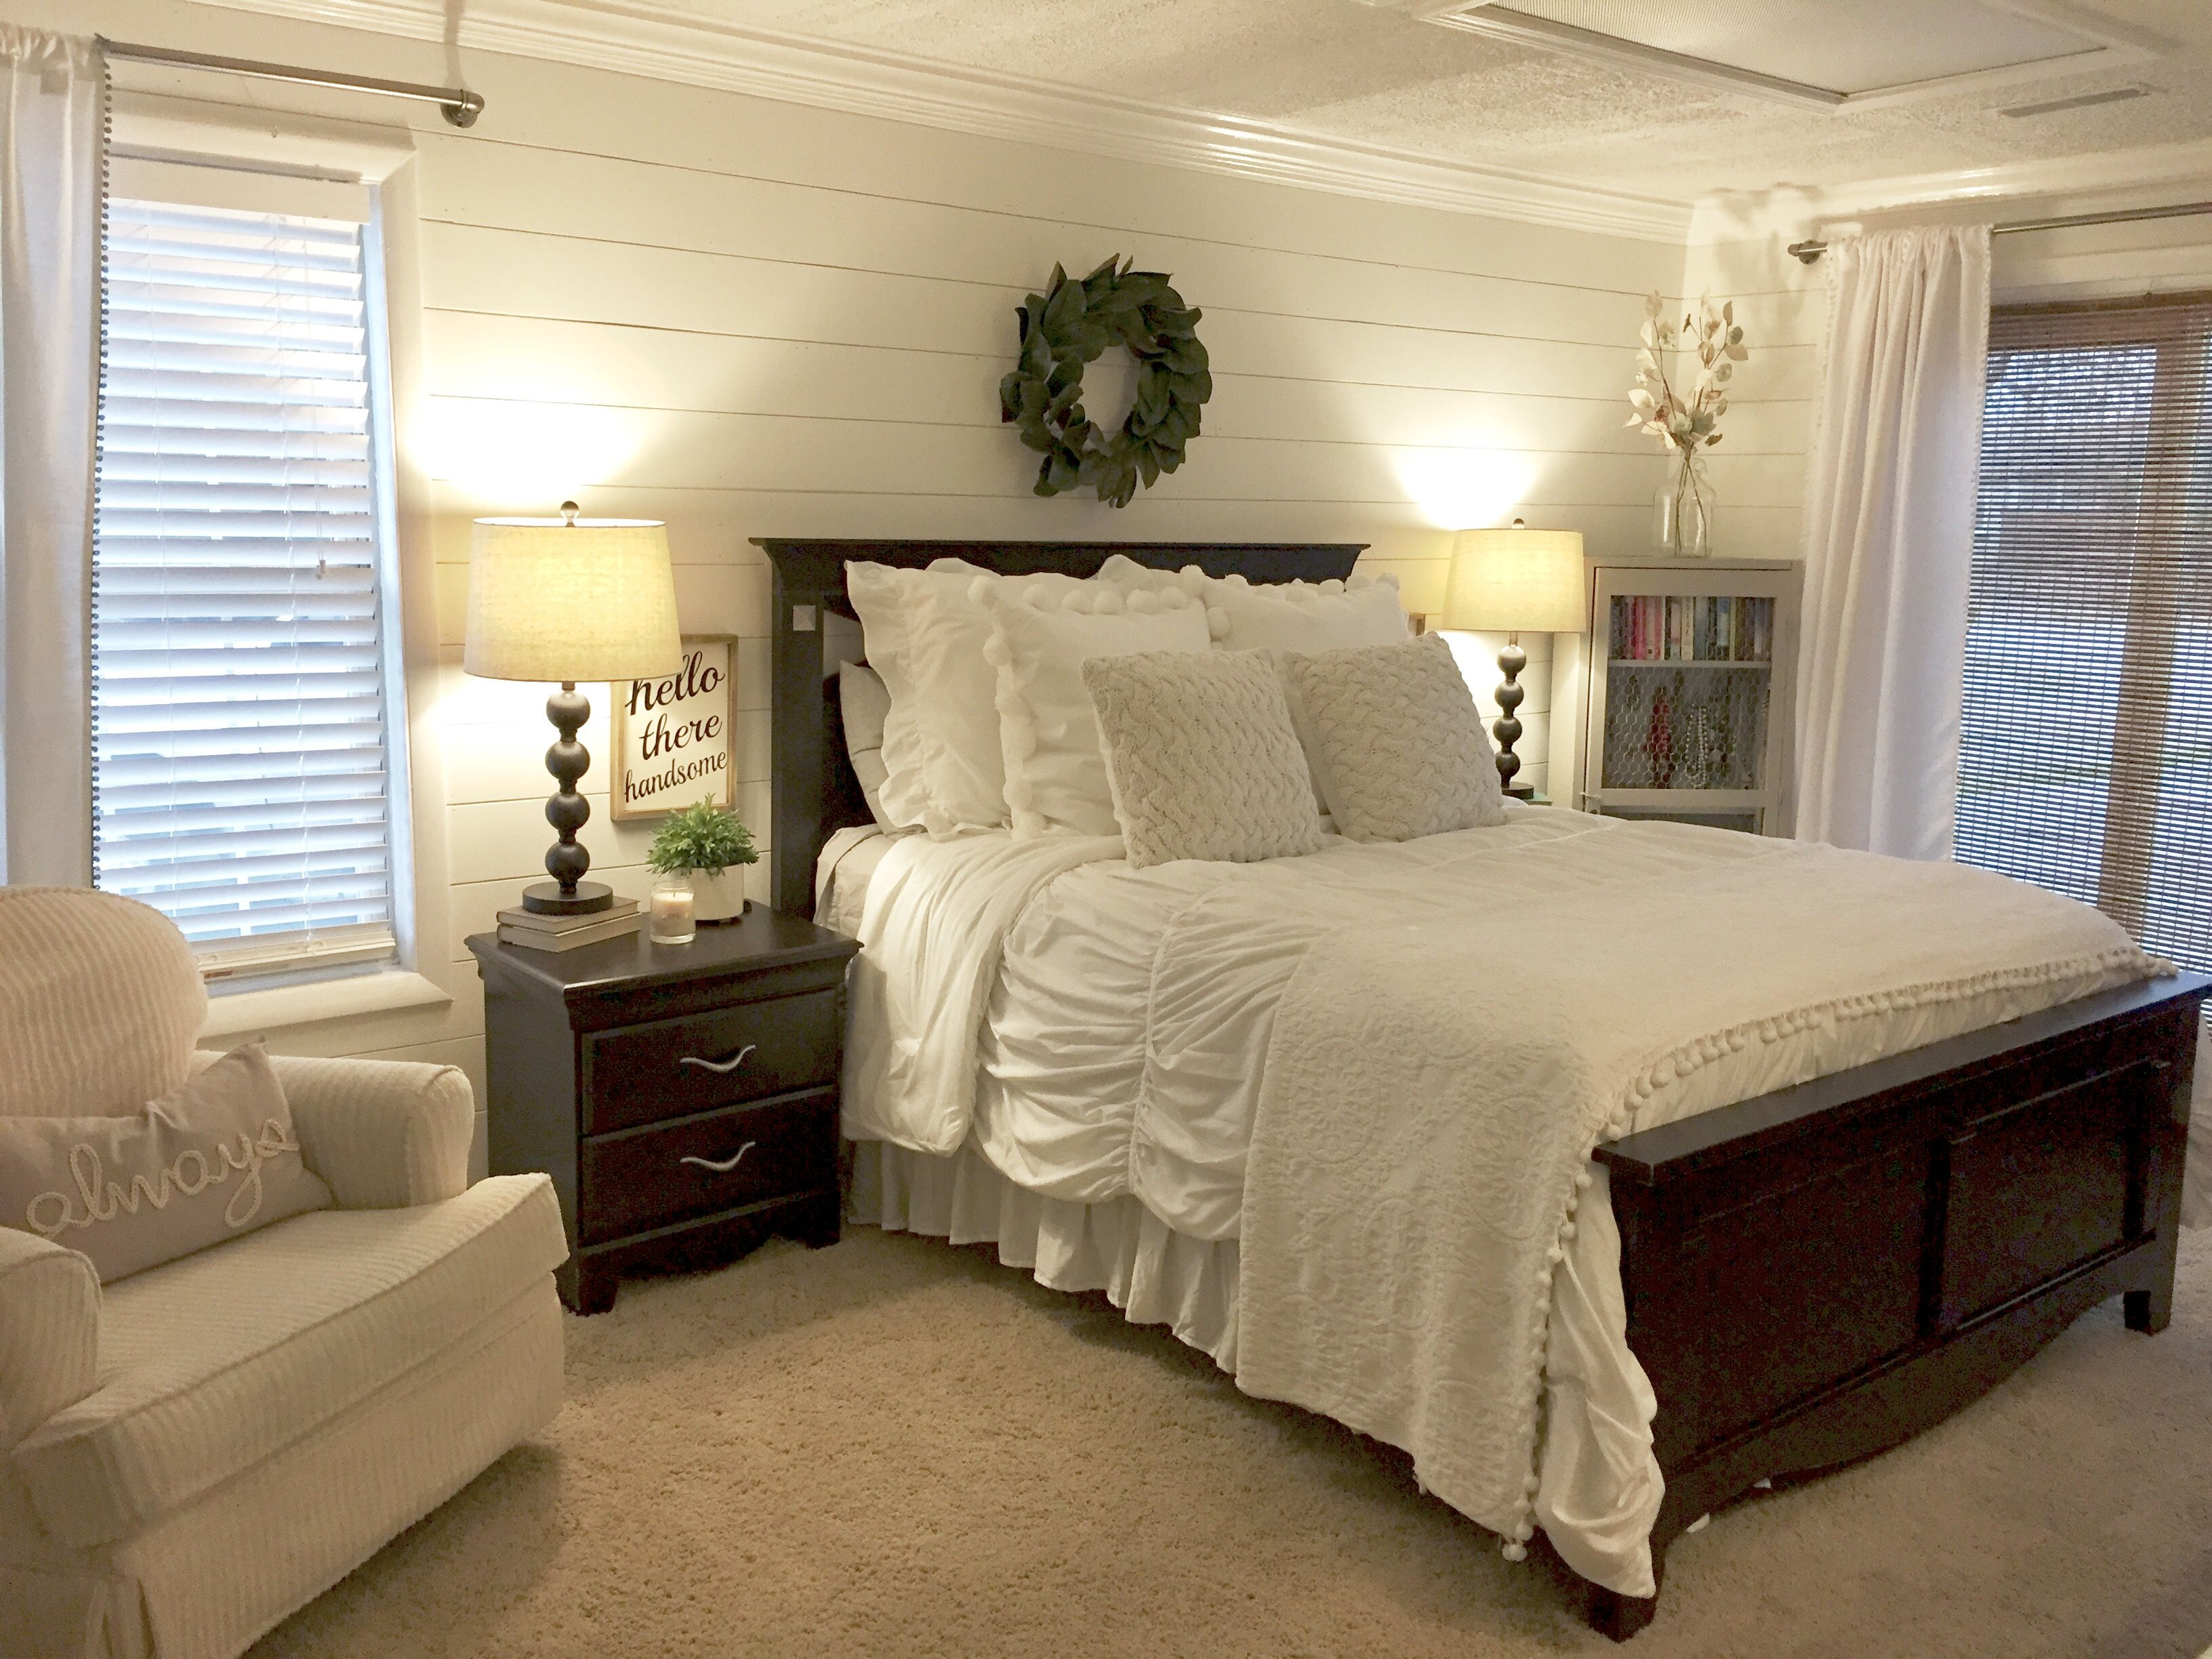 Shiplap Bedroom Walls With Farmhouse Charm Magnolia Wreath And Alabaster White Paint The